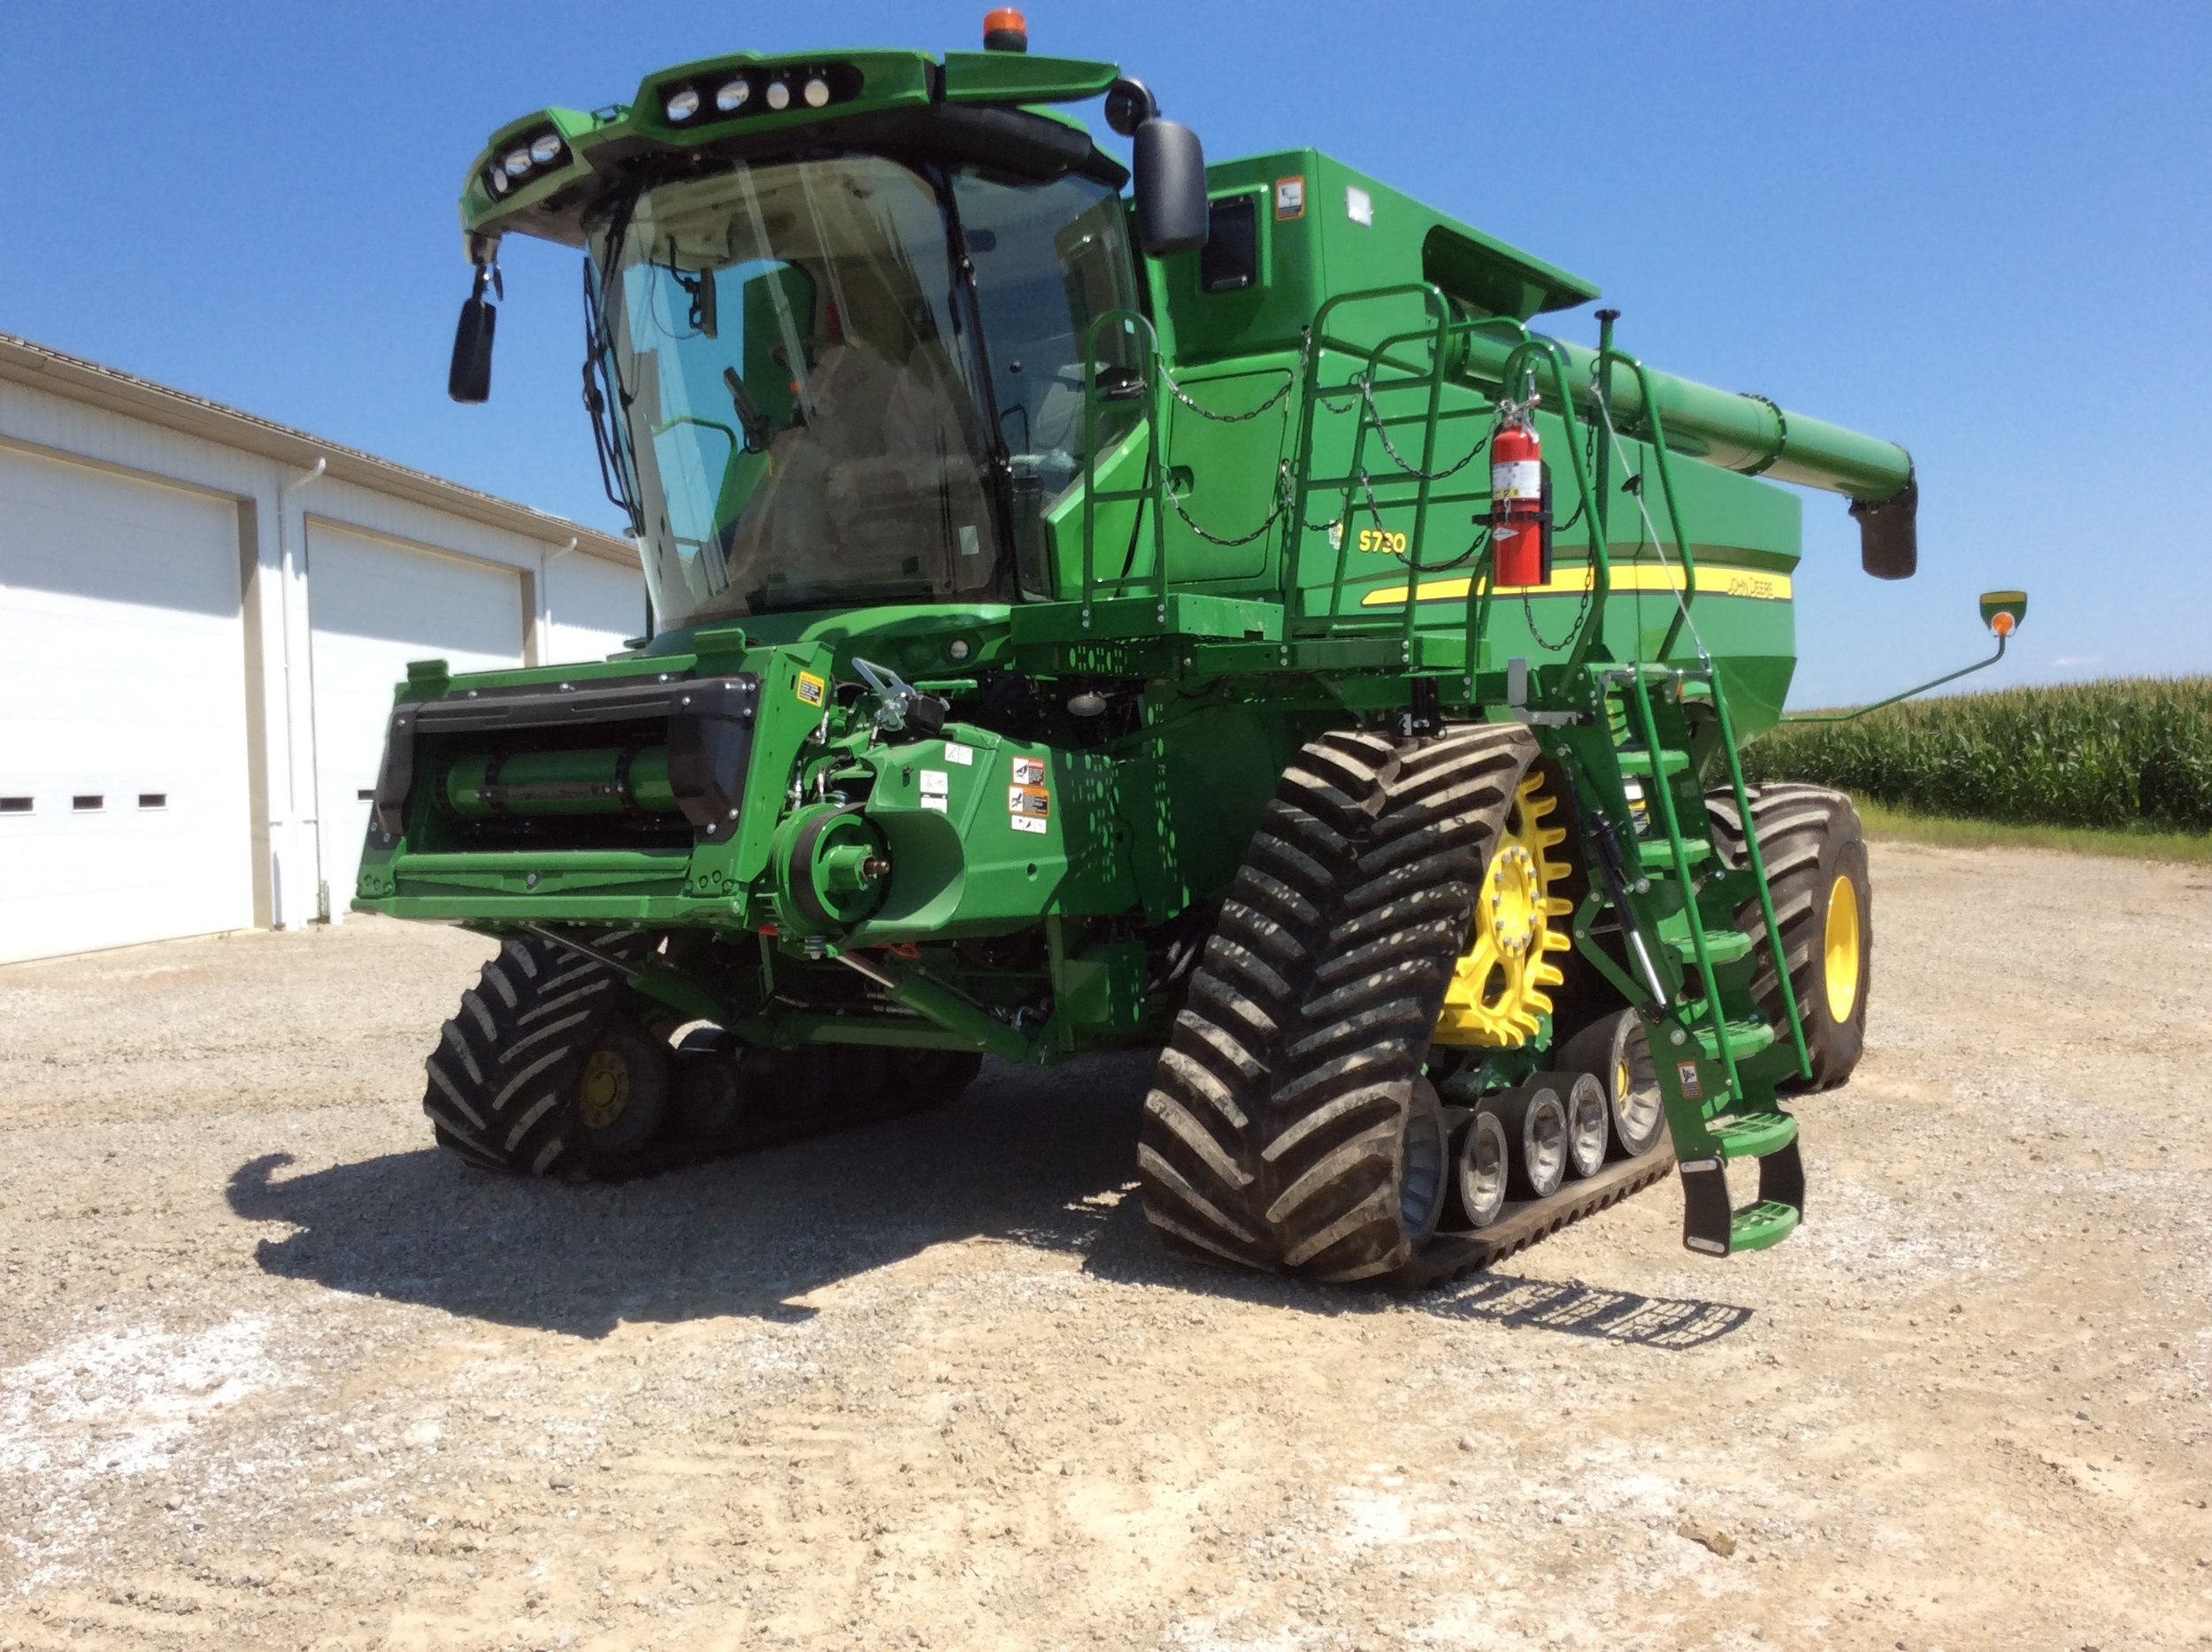 Pictured above is a new 2019 John Deere S790 combine with factory tracks and folding ladder. PWR EZ SYSTEMS has been asked to create a power fold for the steps and a power swing for the entire cab entry platform. Each function can be operated separately or together at the same time. They can also be stopped at any time with the push of a button.